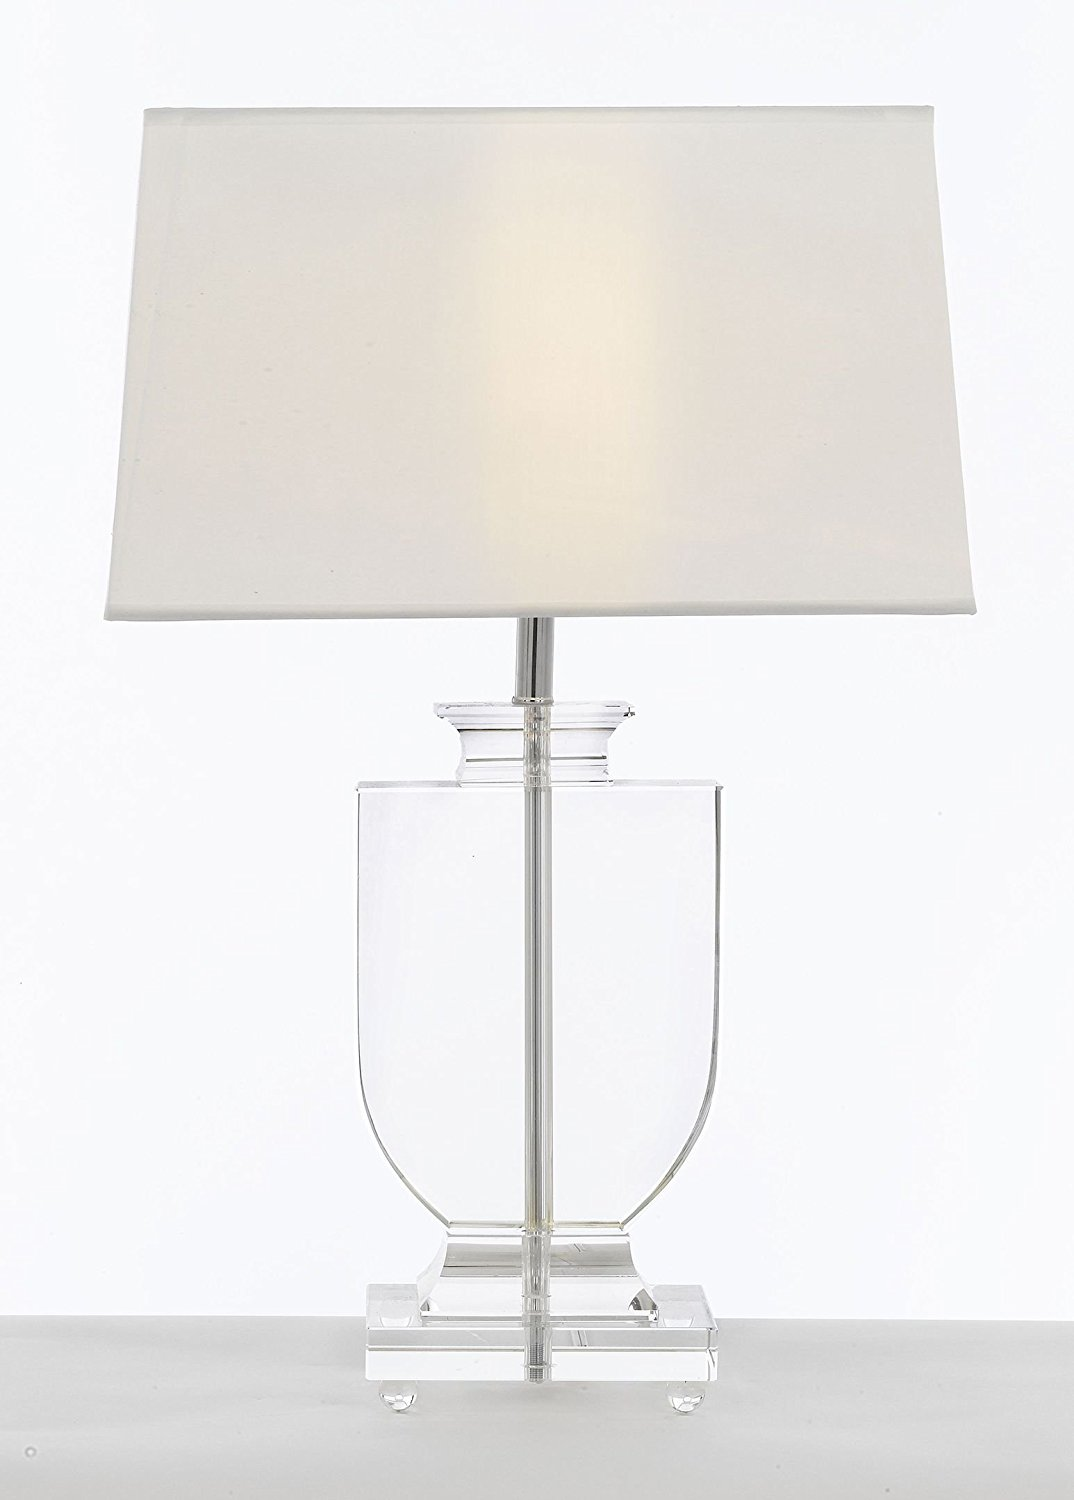 Crystal Urn Table Lamp with White Shade Modern Glass Contemporary Modern Lamp Desk,Bedside,Living Room,For Bedroom,Buffet